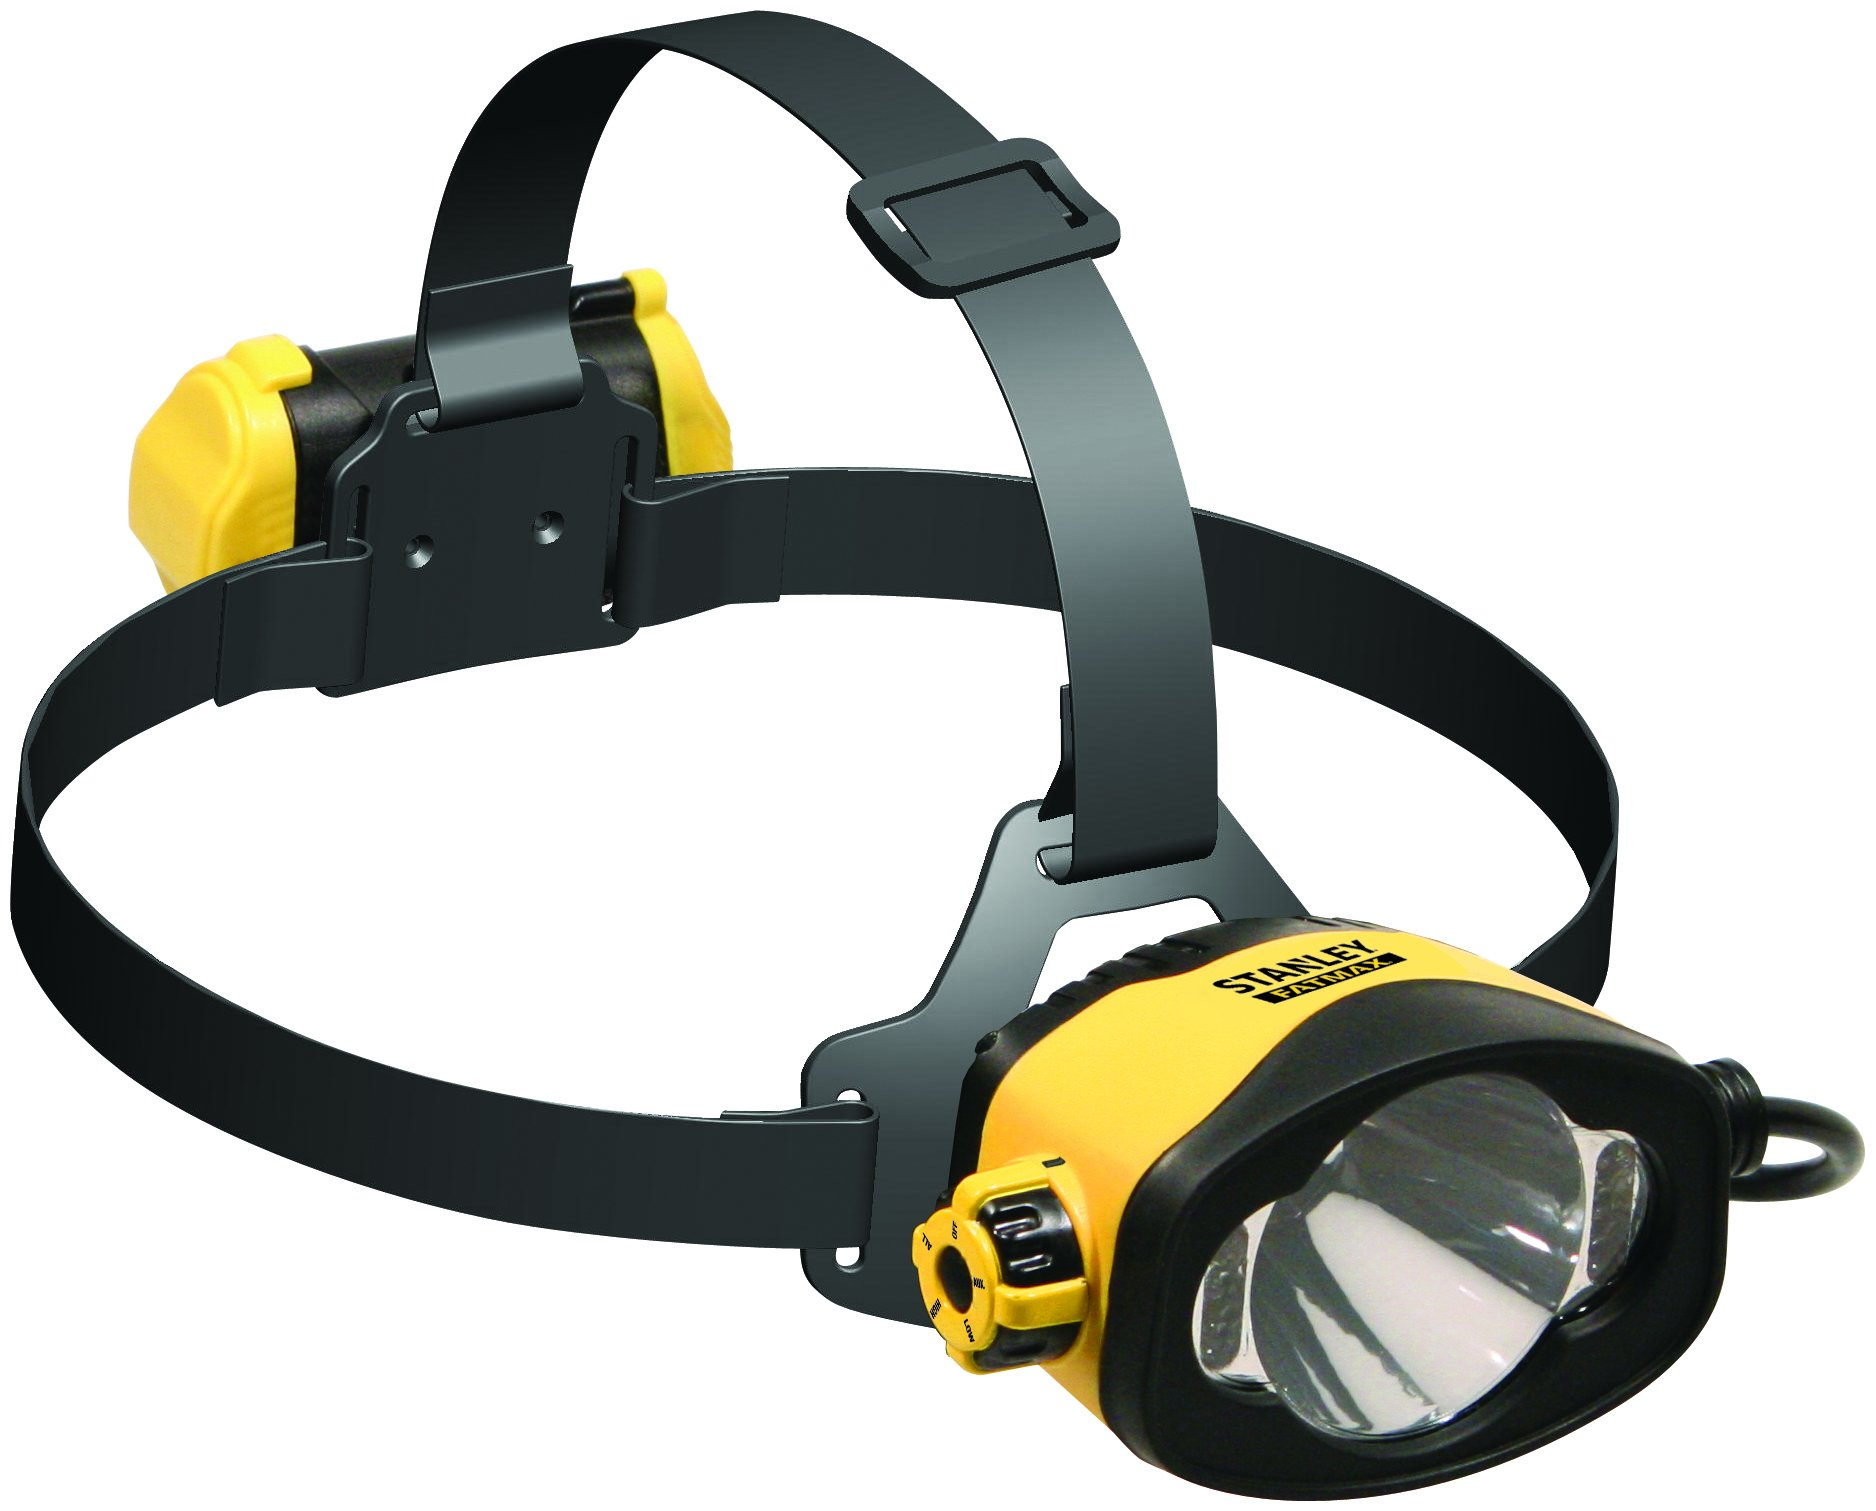 STANLEY FATMAX HLWAKS 193 Lumen LED Waterproof Headlamp by STANLEY